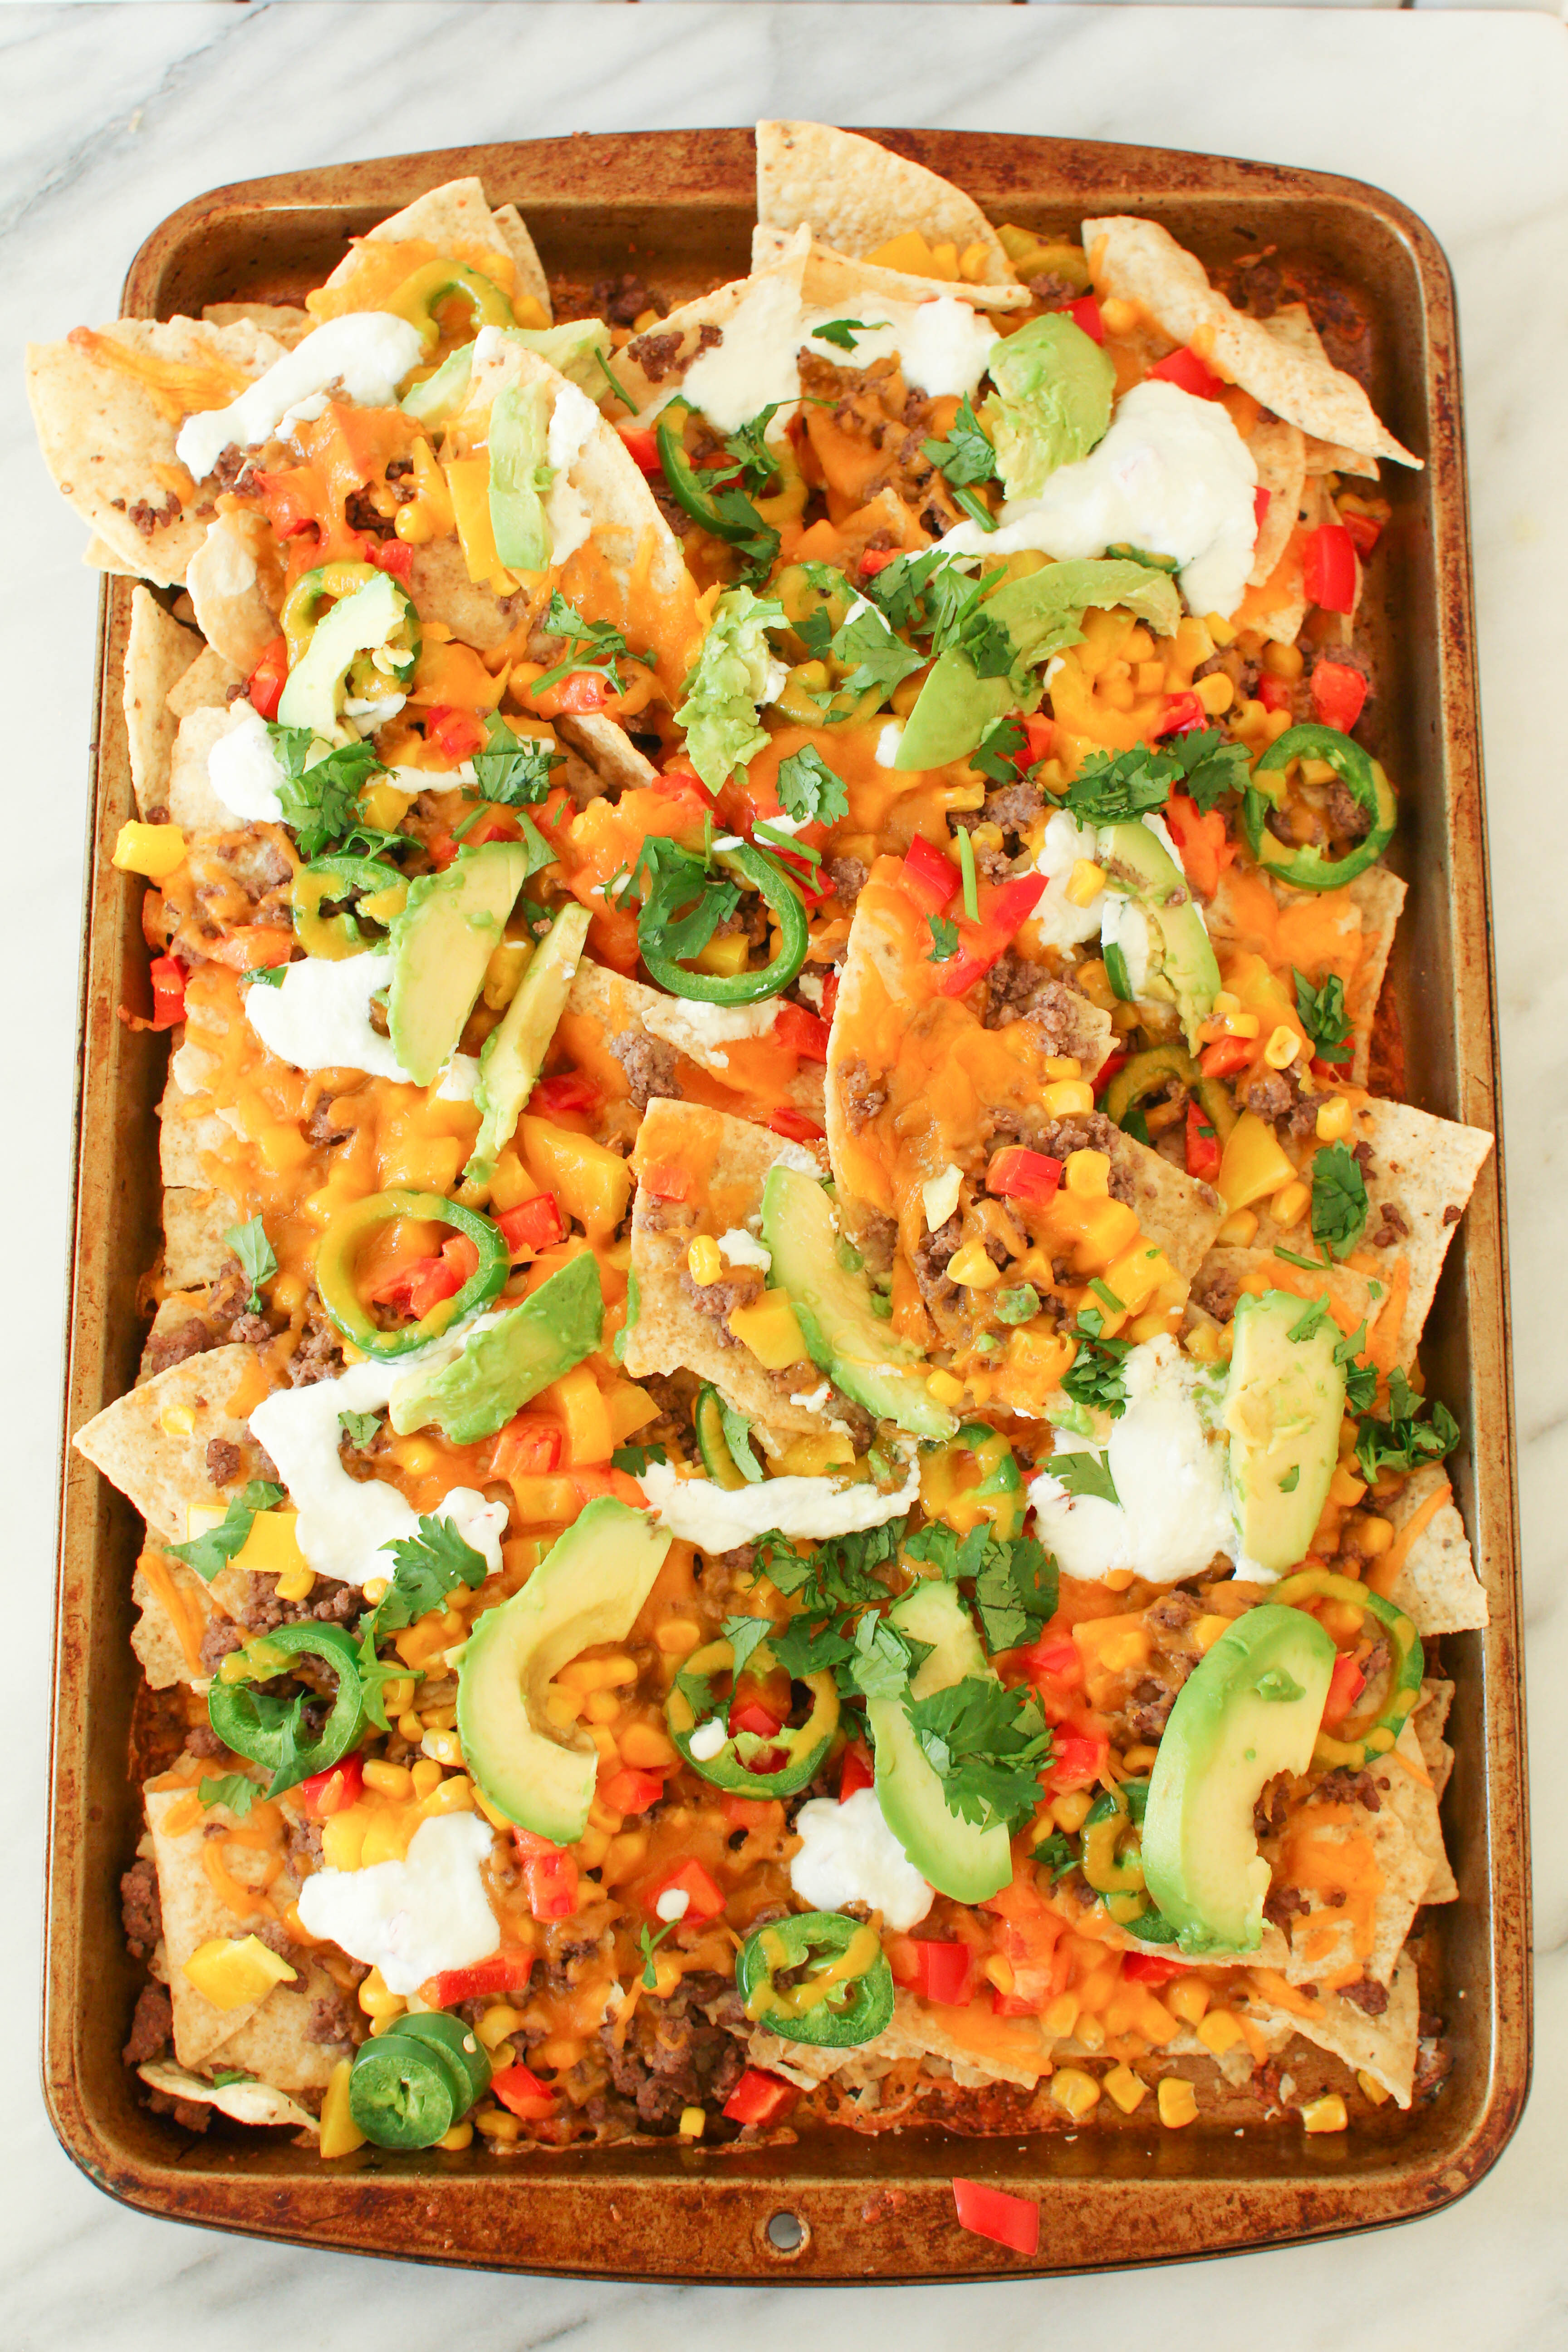 Perfect for game day, these cheesy beef sheet pan nachos can feed a crowd. Tortilla chips topped with seasoned ground beef, corn, peppers, jalapenos and cheese and baked until crispy and melted. Topped with sour cream, avocado and cilantro.